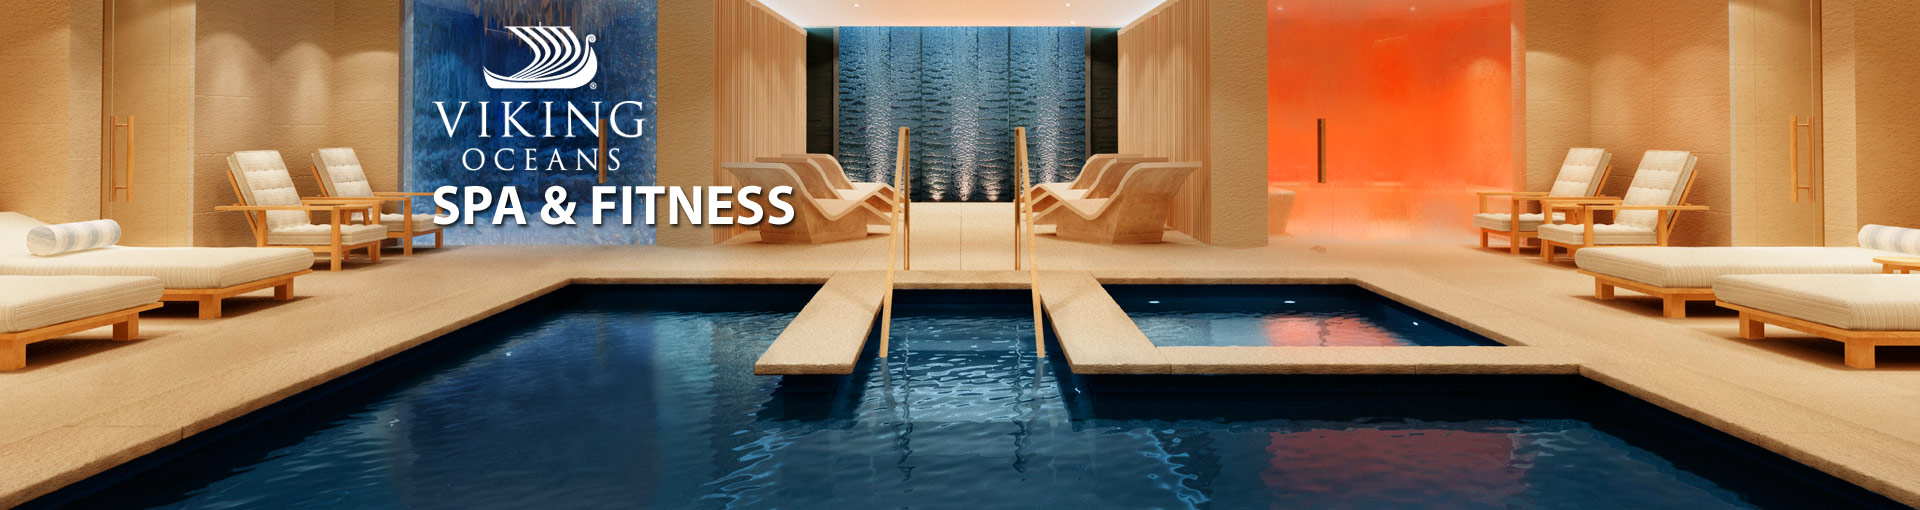 Viking Oceans Spa & Fitness